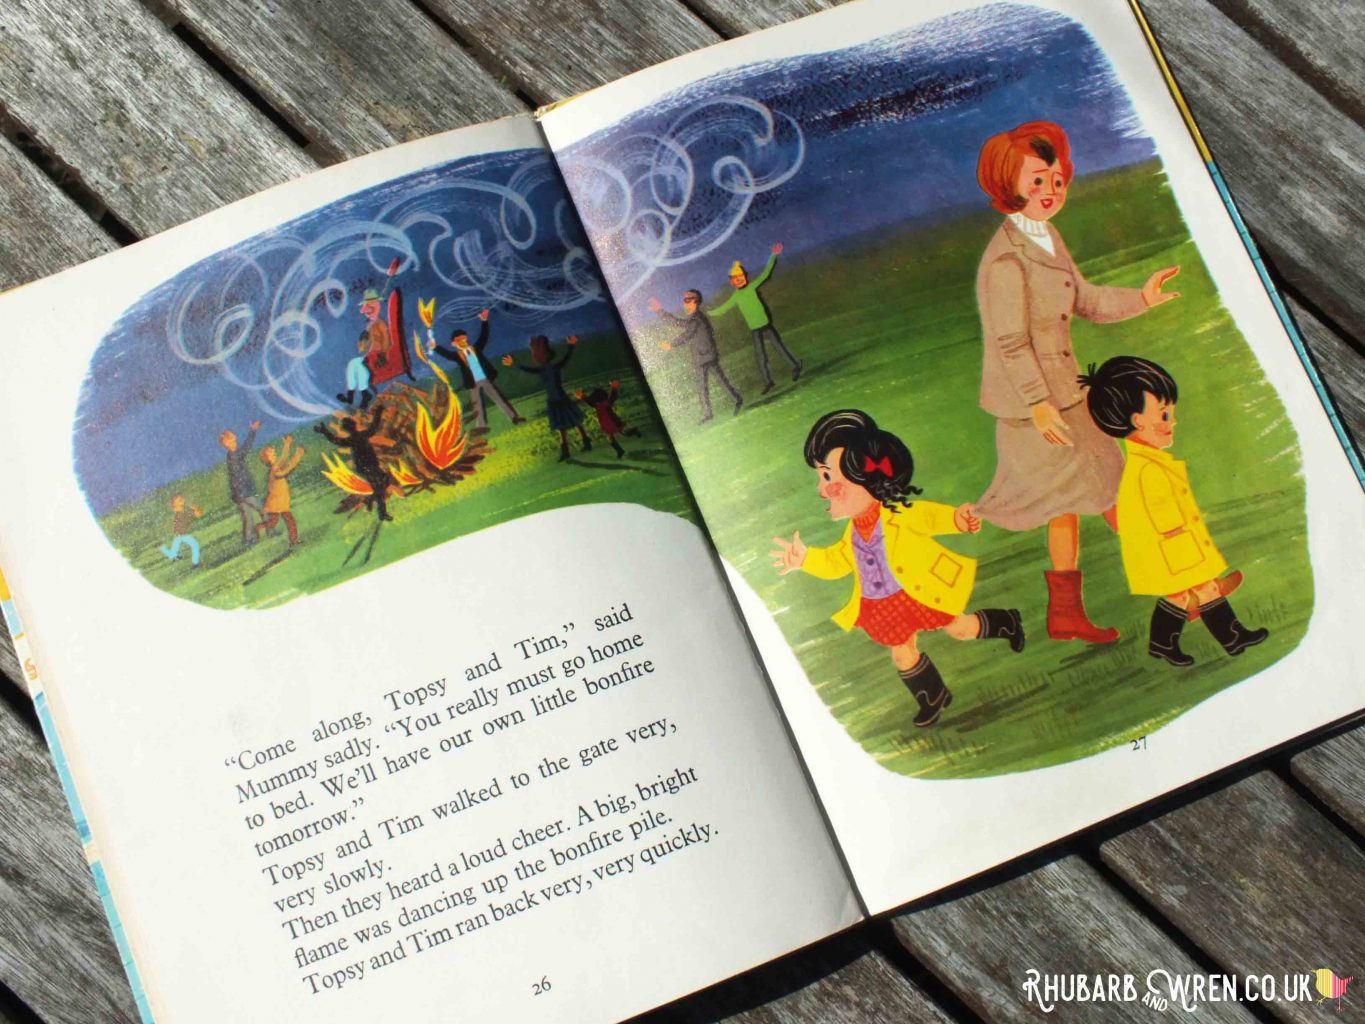 Illustration of Topsy and Tim with their mother, pointing to bonfire, from Topsy and Tim's Bonfire Night